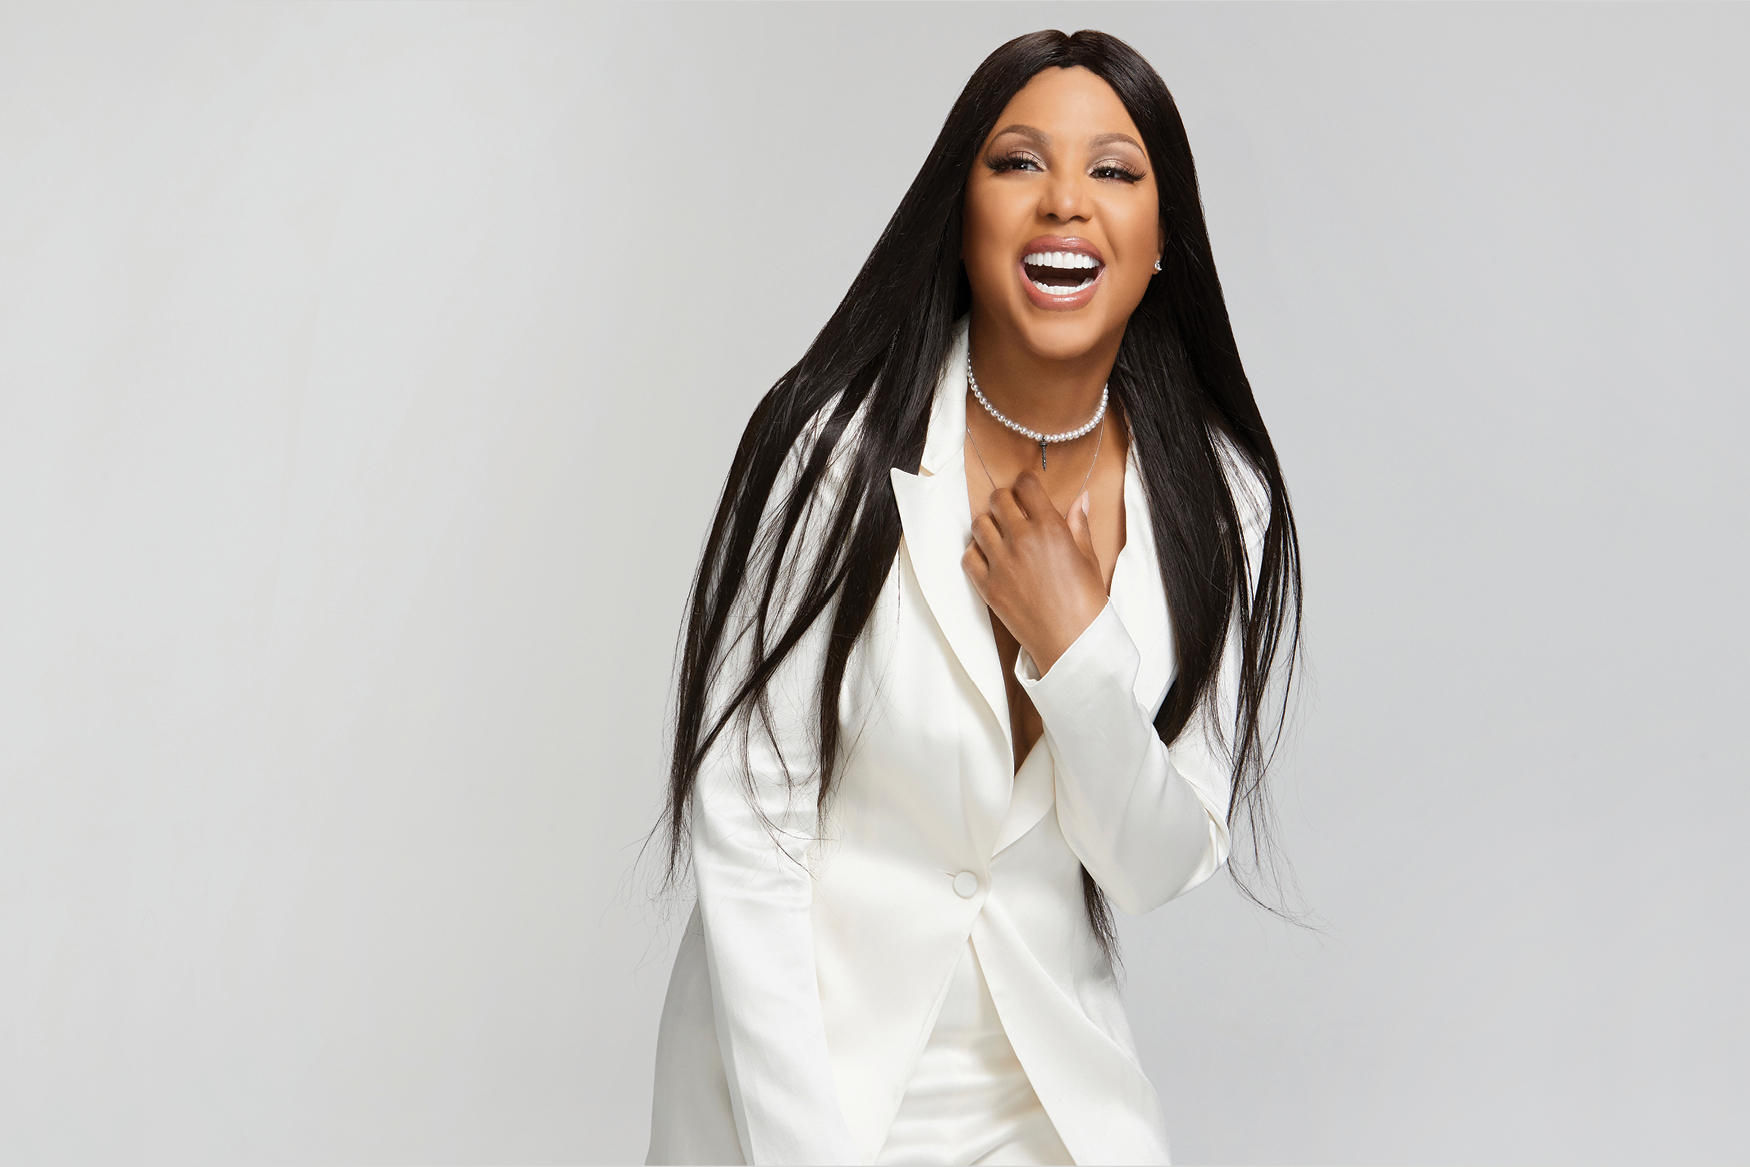 toni-braxtons-latest-collab-makes-fans-crazy-with-excitement